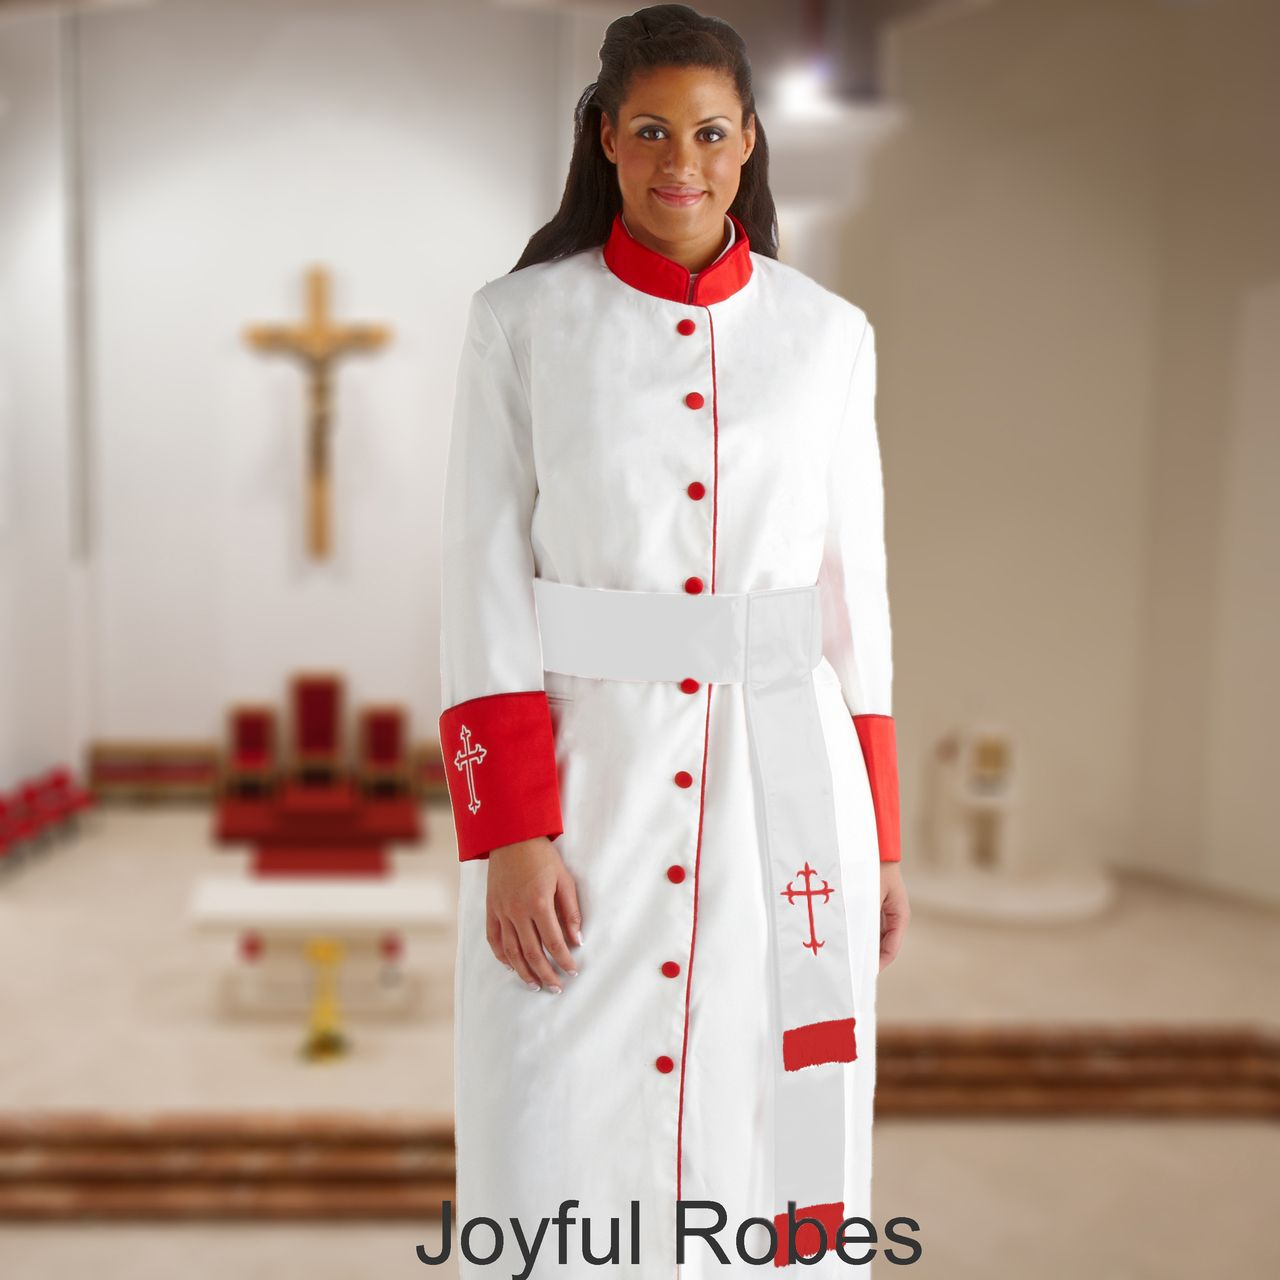 355 W. Women's Pastor/Clergy Robe - White/Red Cuff Matching Cincture Set